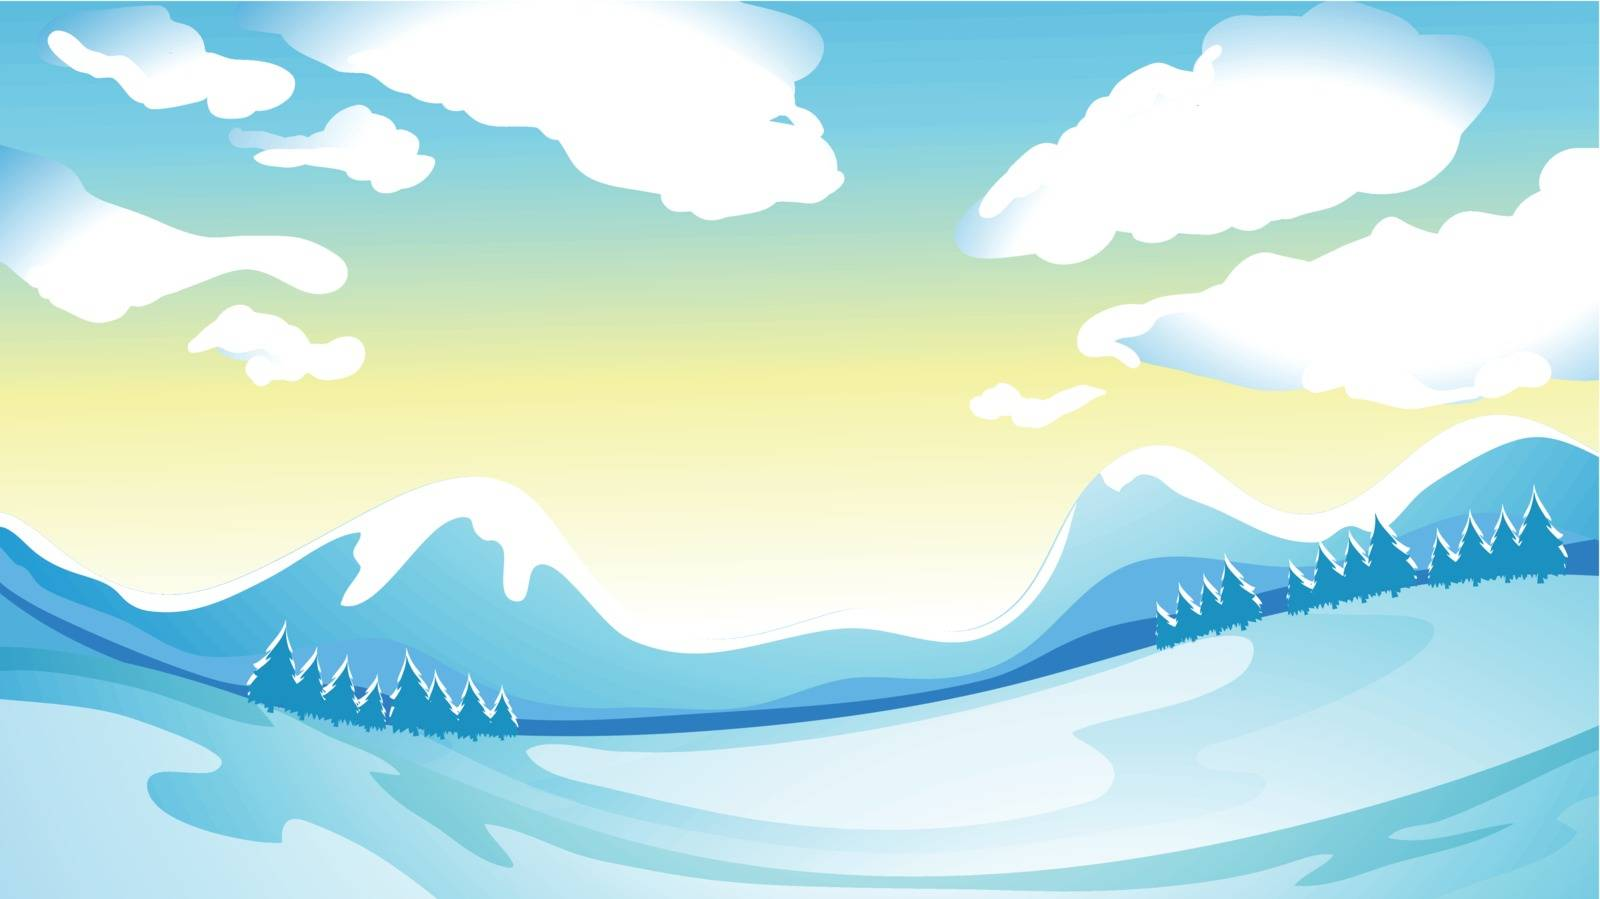 Illustration of a freezy surrounding